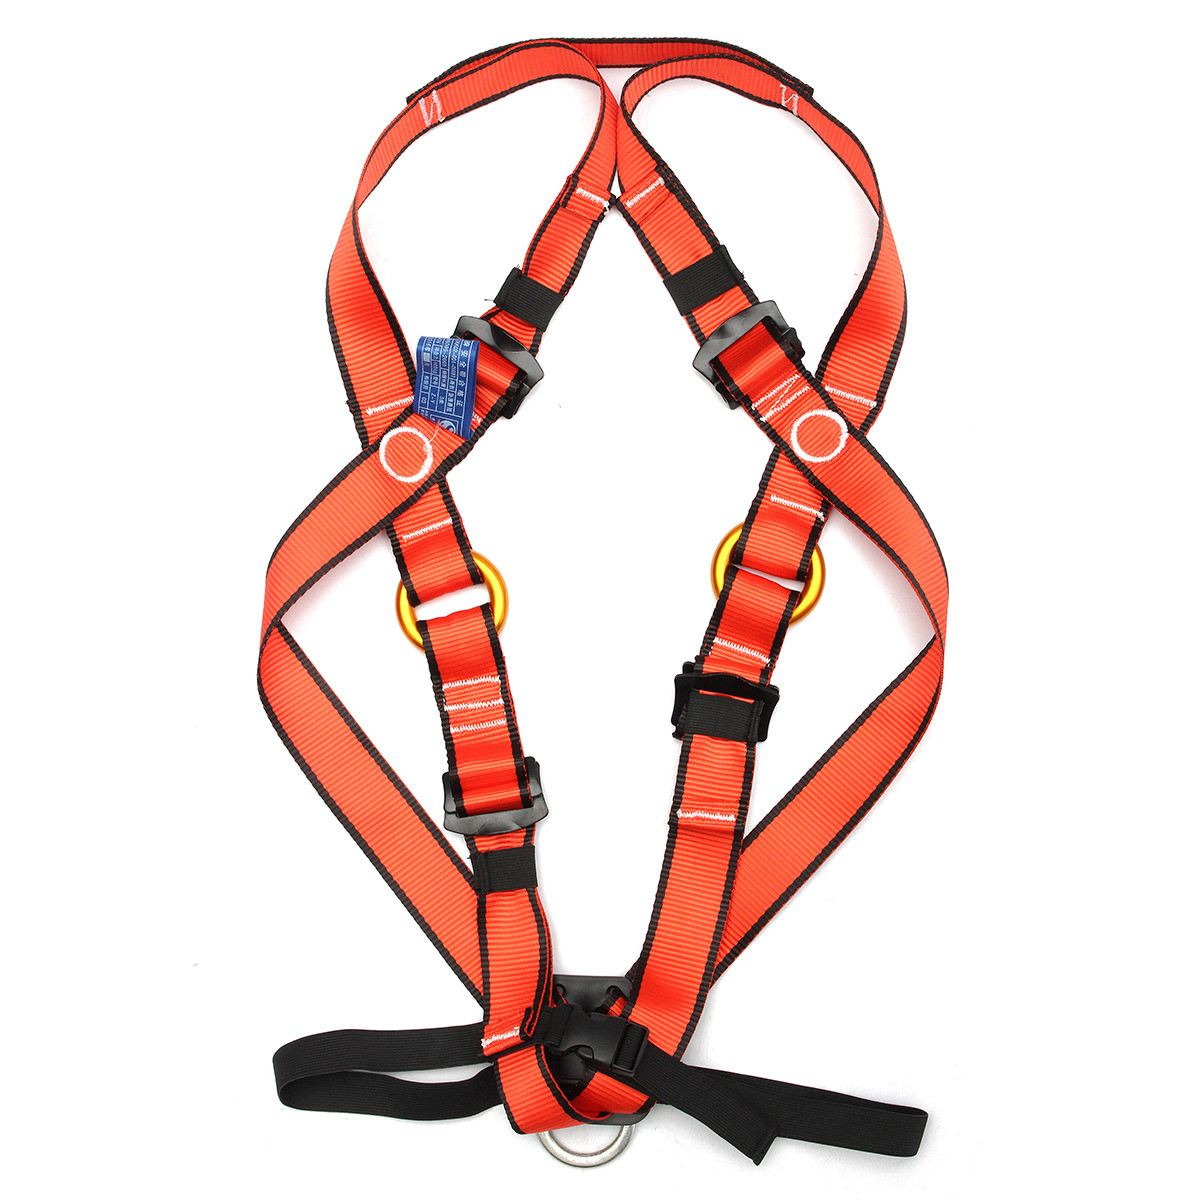 Safurance 1pcs Kids Children Seat Belt Rock Climbing Protect Safety Harness for Outdoor Rock Rappelling equipment hot sale safety body harness outdoor mountaineering rock climbing harness protect waist seat belt outside multi tools